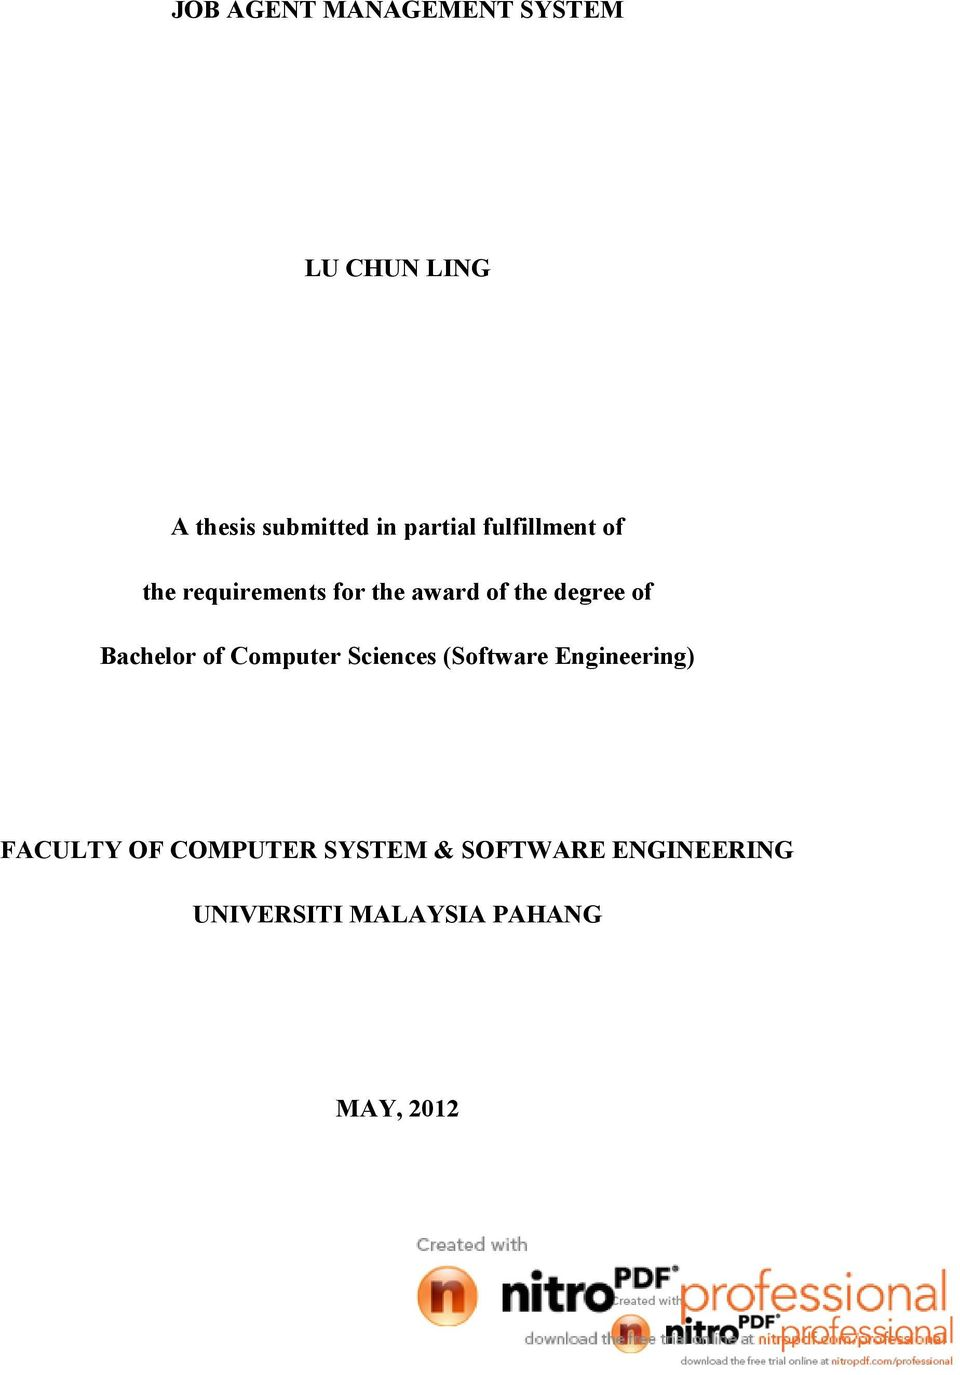 online job application system thesis